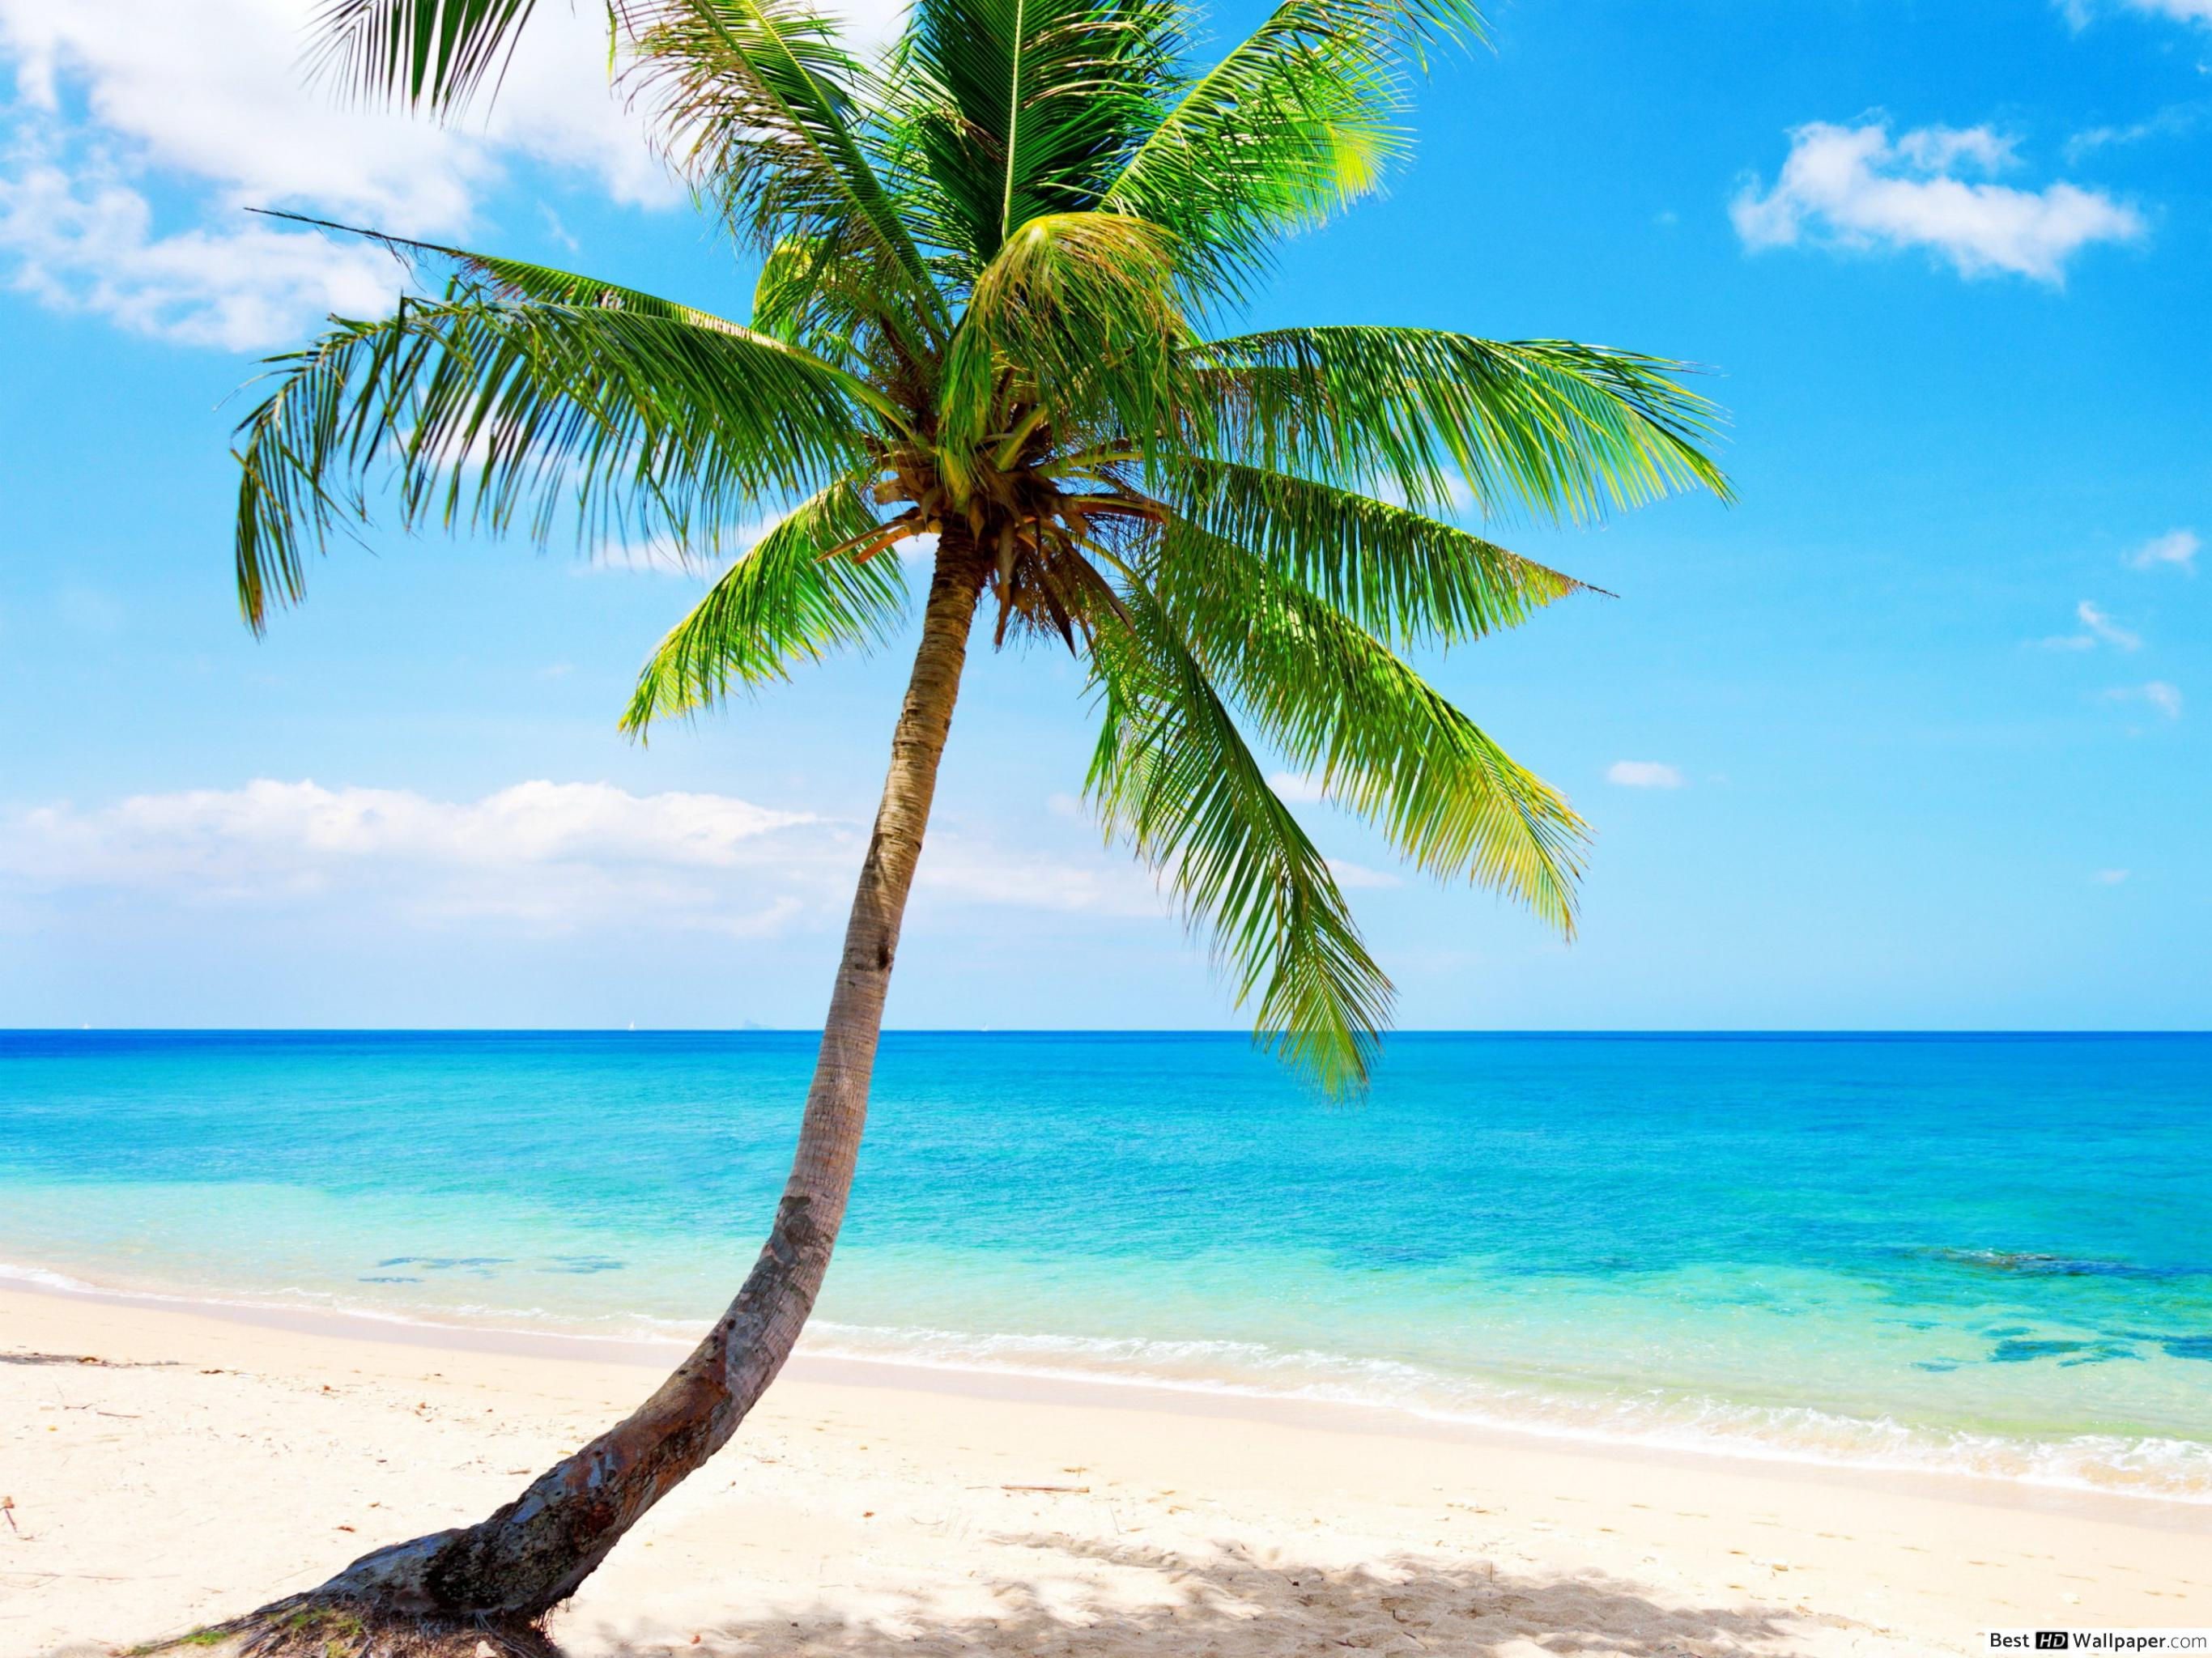 Tropical Beach With Palm Tree - HD Wallpaper